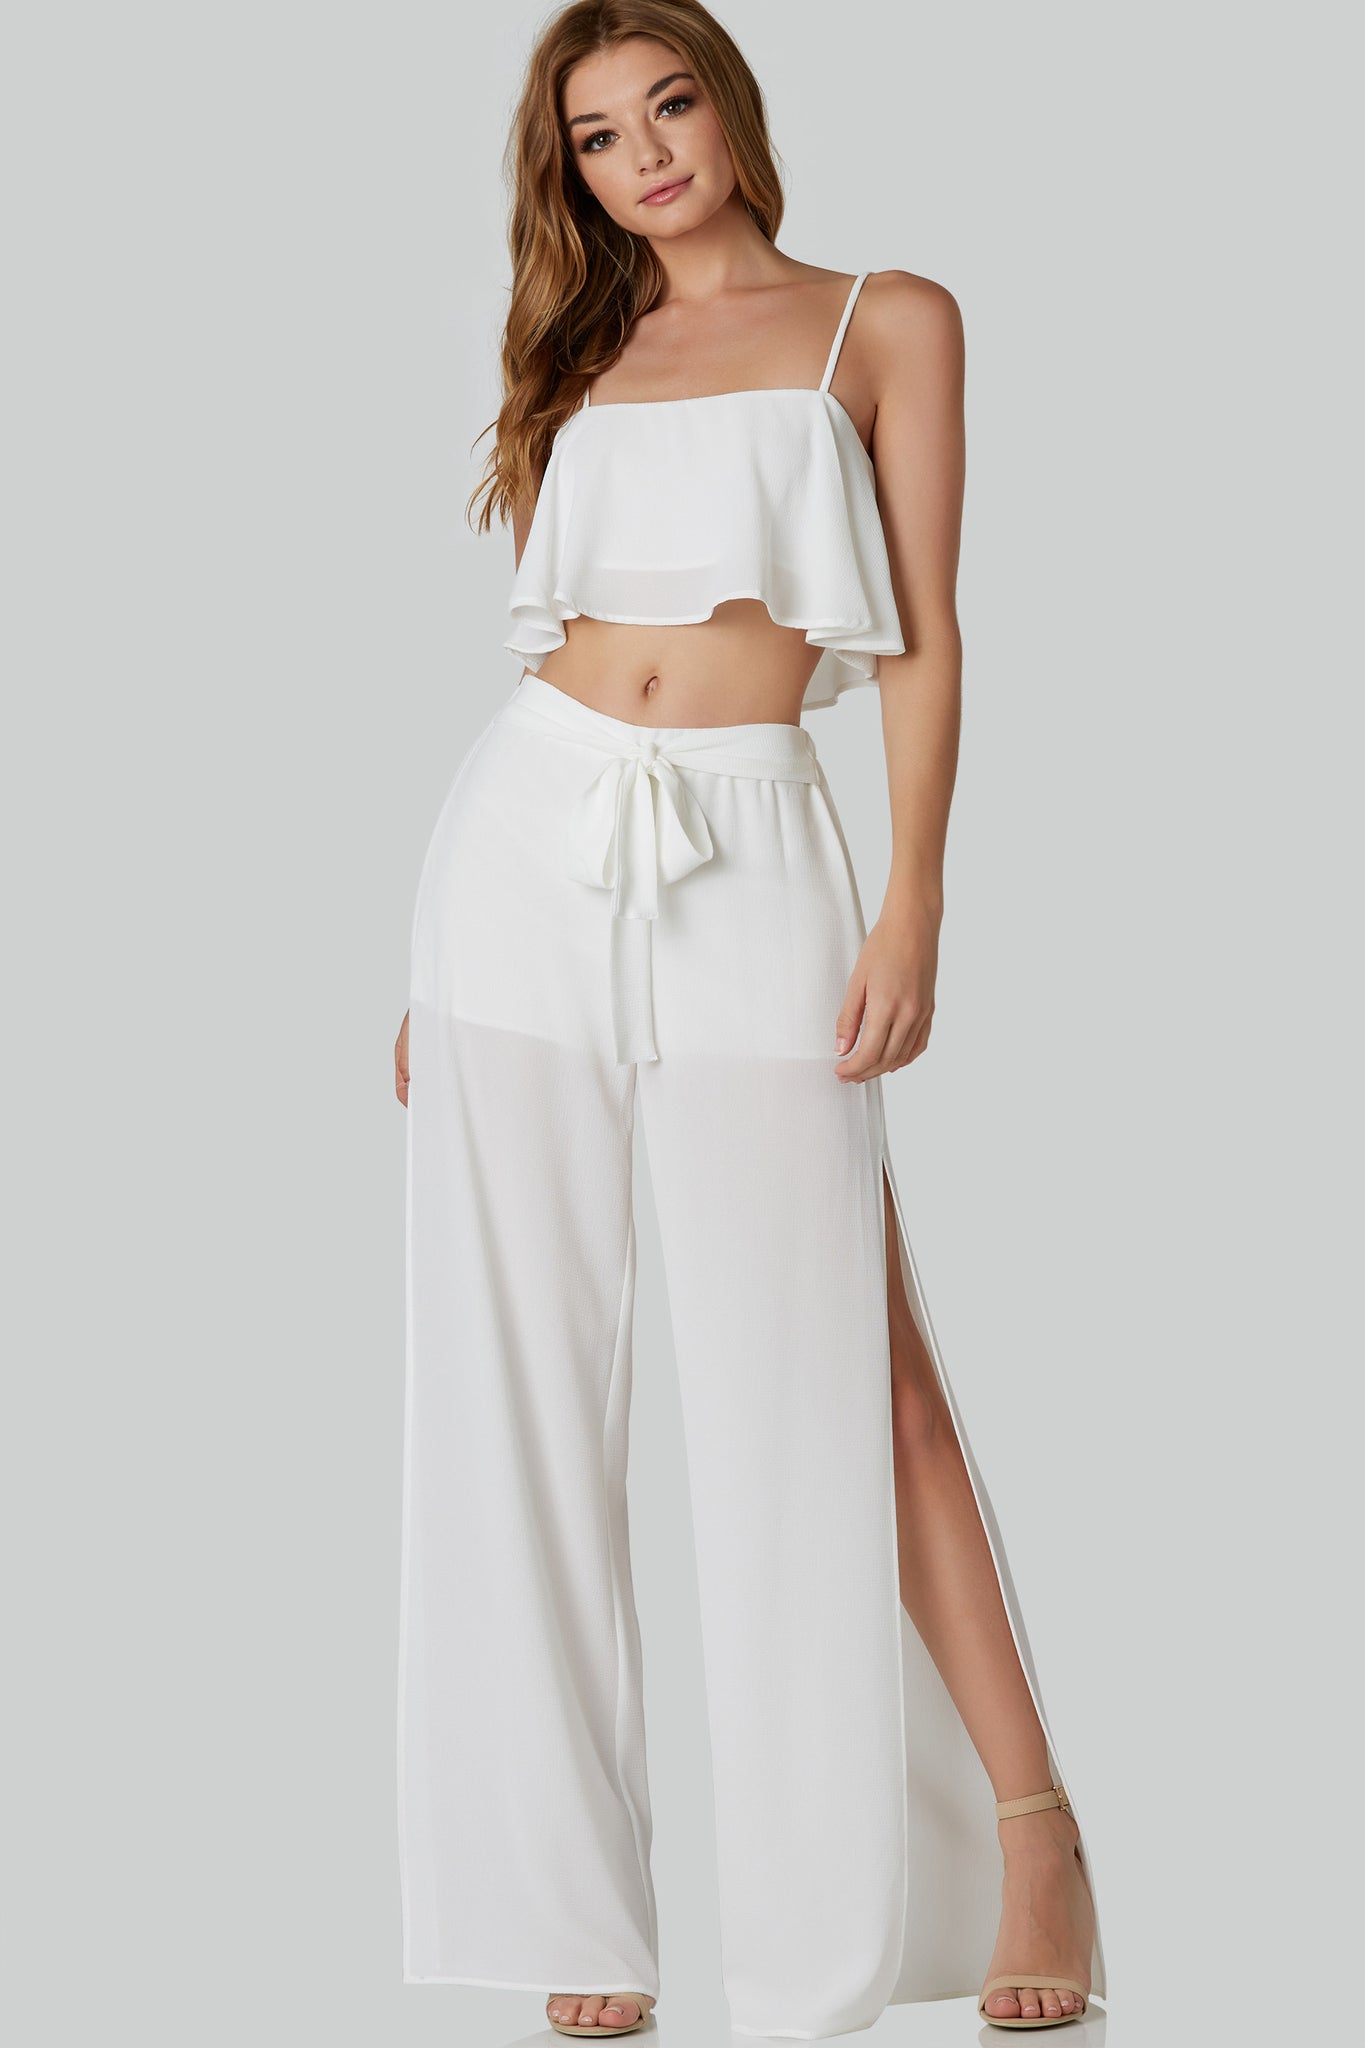 Blank Space Crop Top